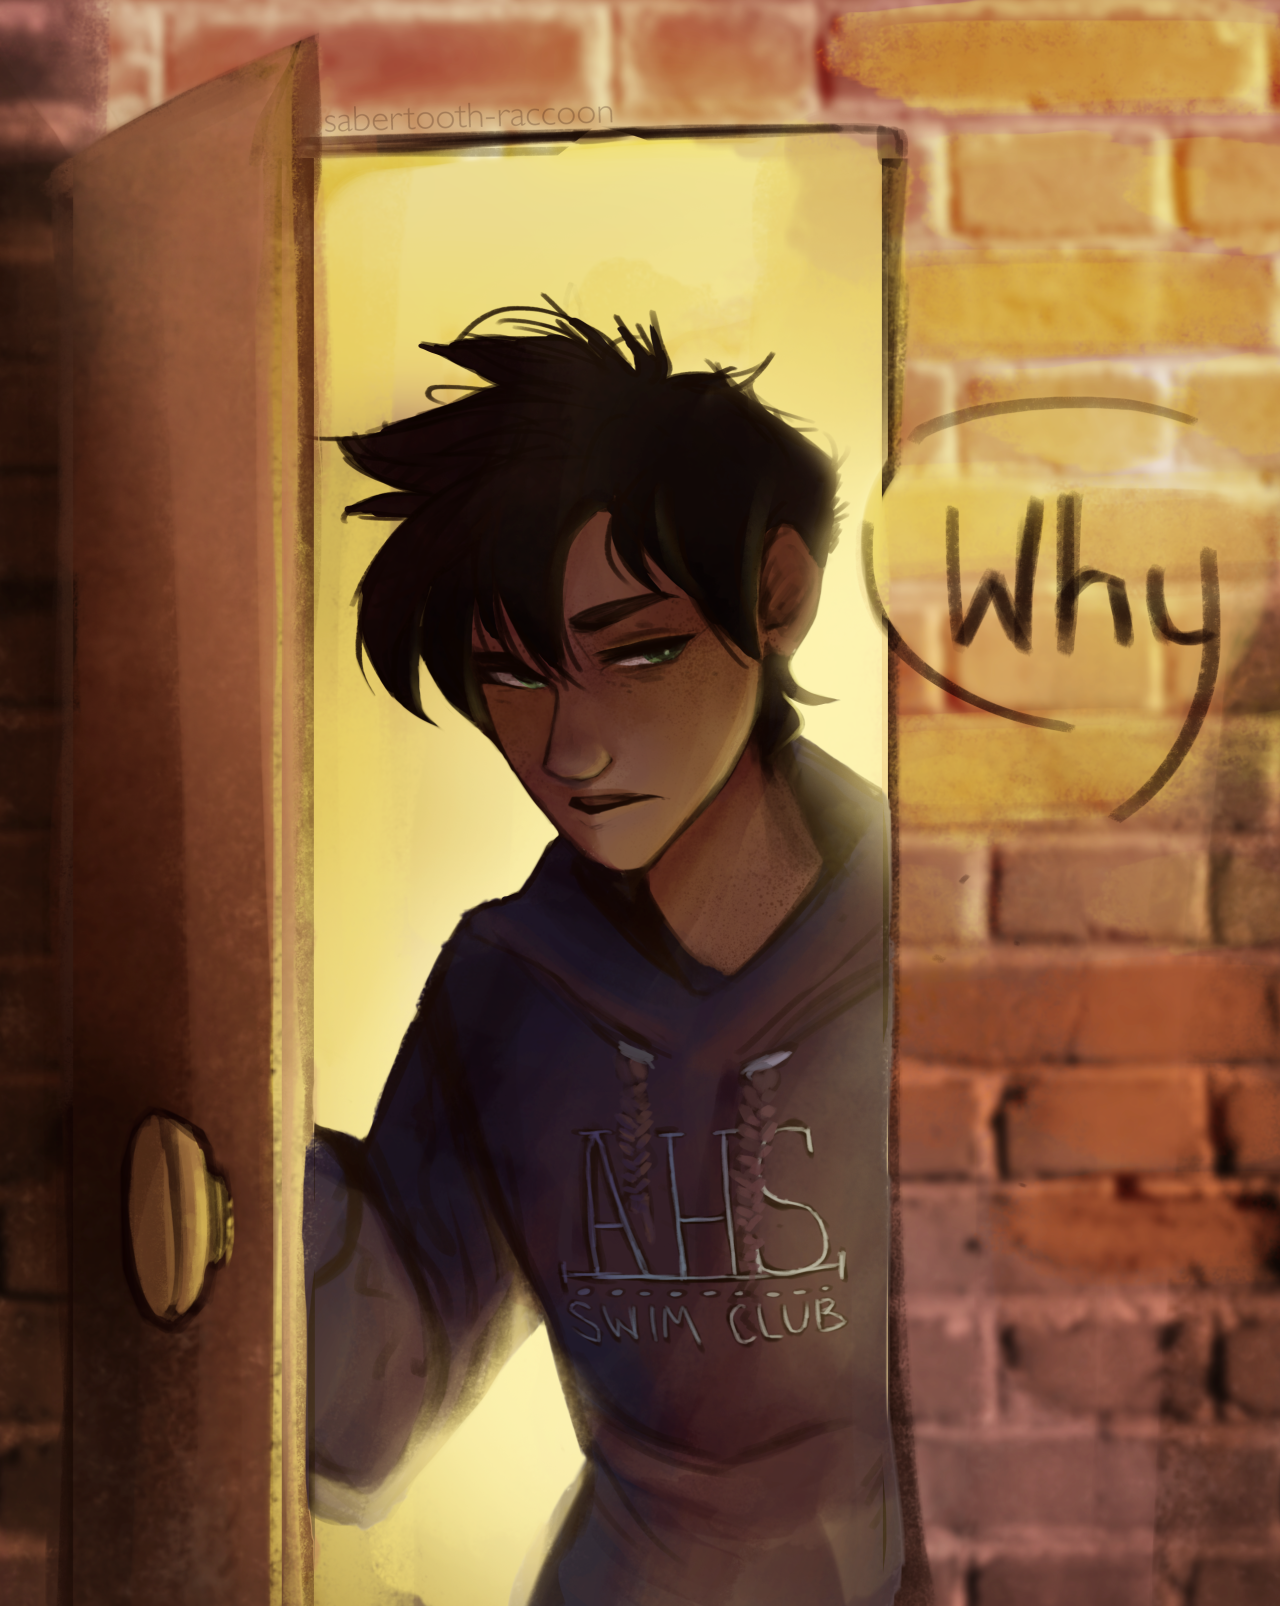 """""""Why?"""" This is a legendary moment in the Percy Jackson fandom.I've seen so many other people draw this scene already, but I had to join the party. Everyone should just draw their own version of this in a reblog.Let's keep this train going. TRIALS OF APOLLO, EVERYONE. WHO'S PUMPED?? 